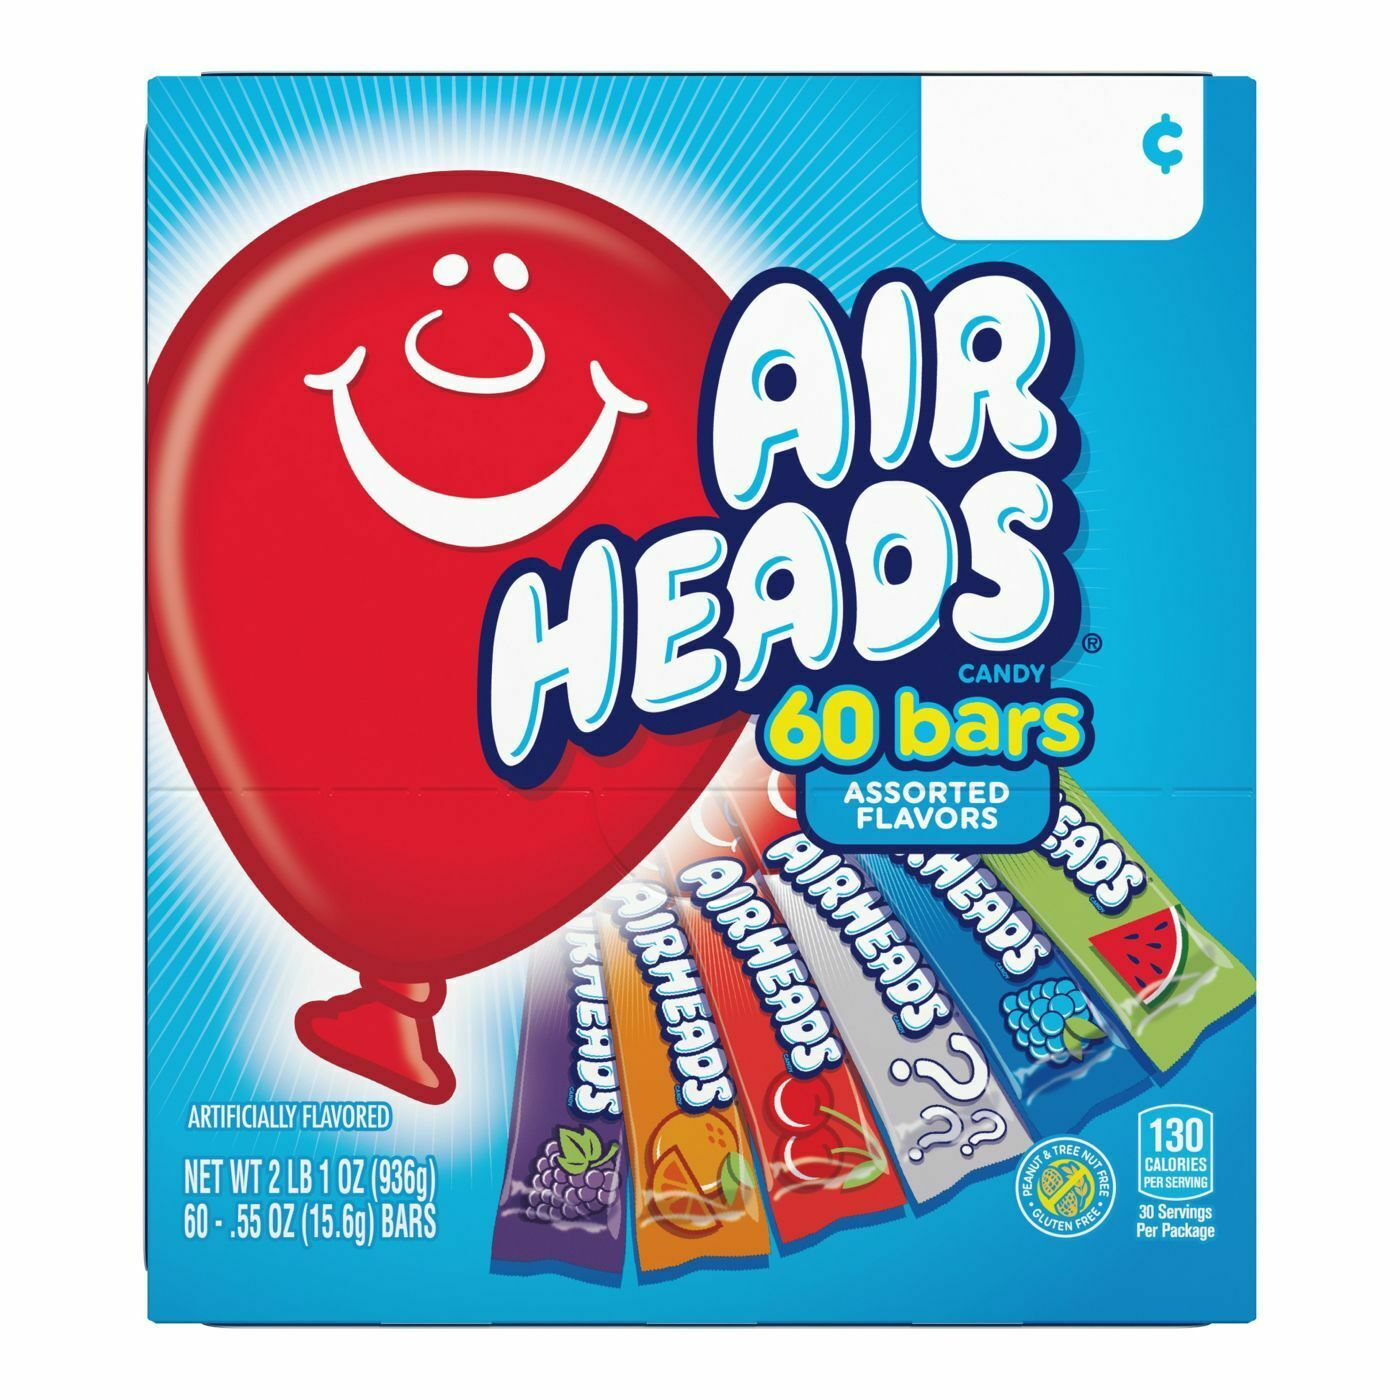 Airheads Mini Bars, Assorted Flavors, 60 bars, 2lb 1oz Box